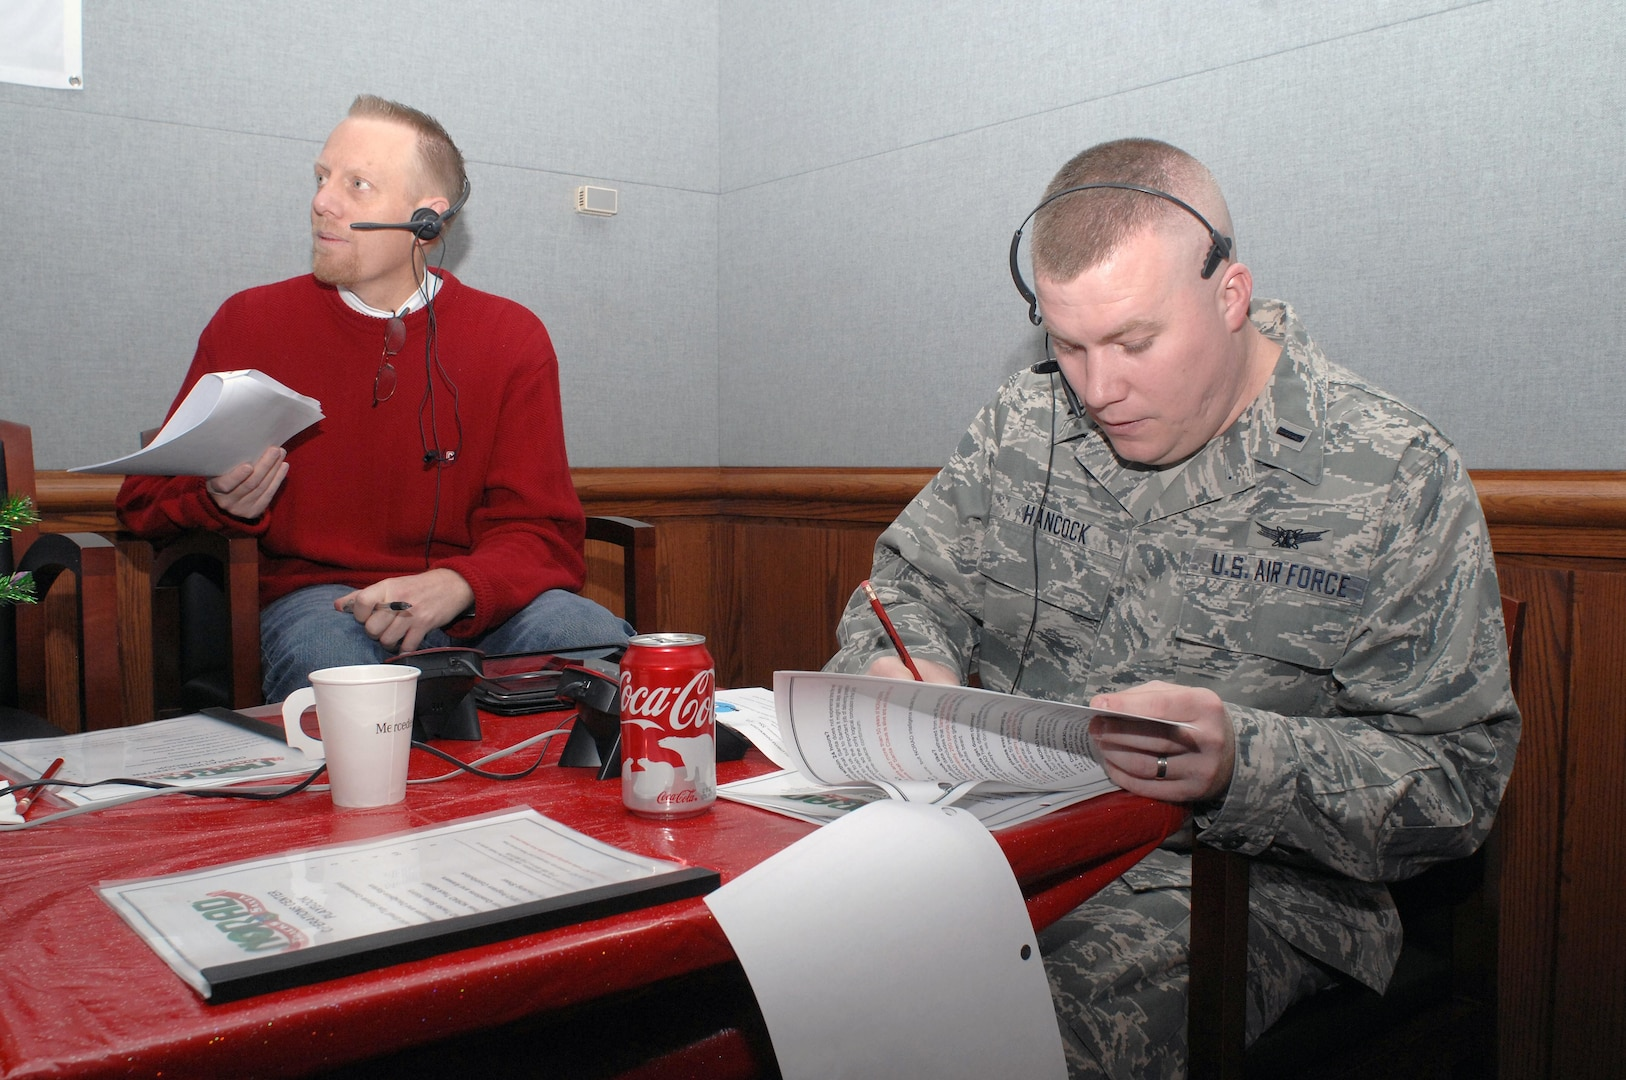 PETERSON AIR FORCE BASE, Colo. - 1st Lt. Jeremy Hancock, 21st Operations Support Squadron, takes a call while volunteering at the NORAD Tracks Santa Operations Center Dec. 24. More than 1,200 volunteers took more than 114,000 phone calls during the 24 hour period that NORAD tracked Santa in 2012. (U.S. Air Force photo by Tech. Sgt. Thomas J. Doscher)